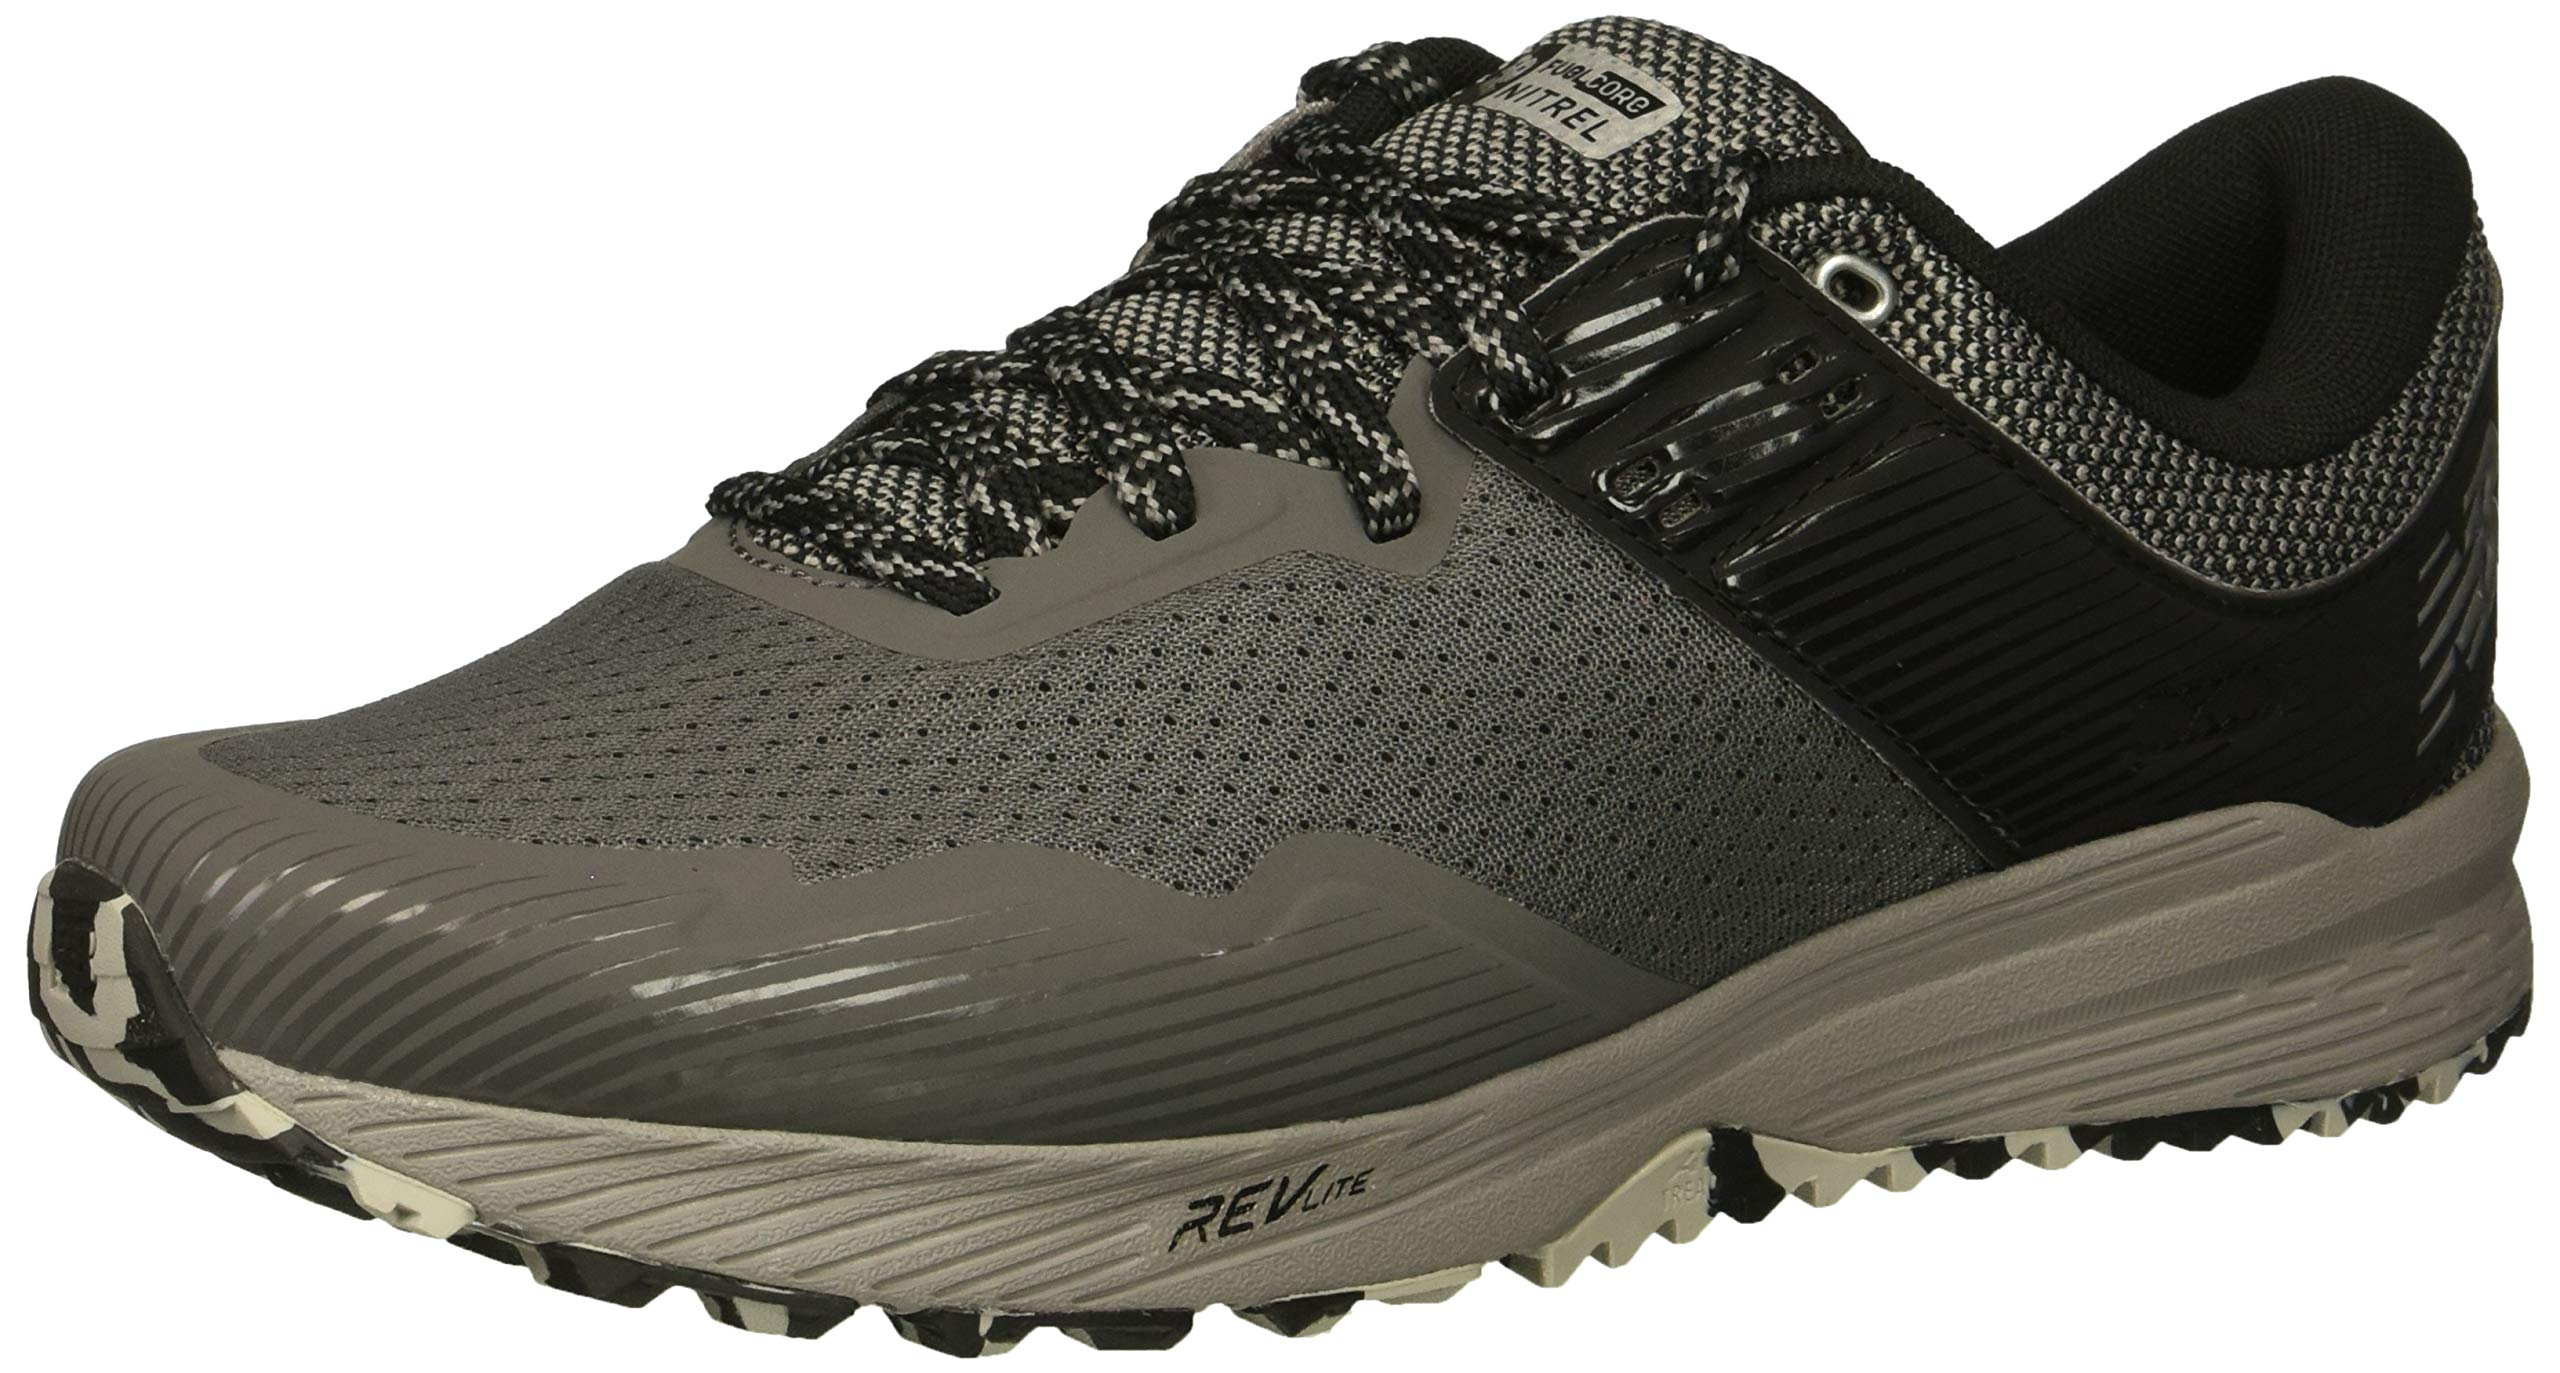 New Balance Men's Nitrel V2 FuelCore Trail Running Shoe, Castlerock/Black/Silver, 7 D US